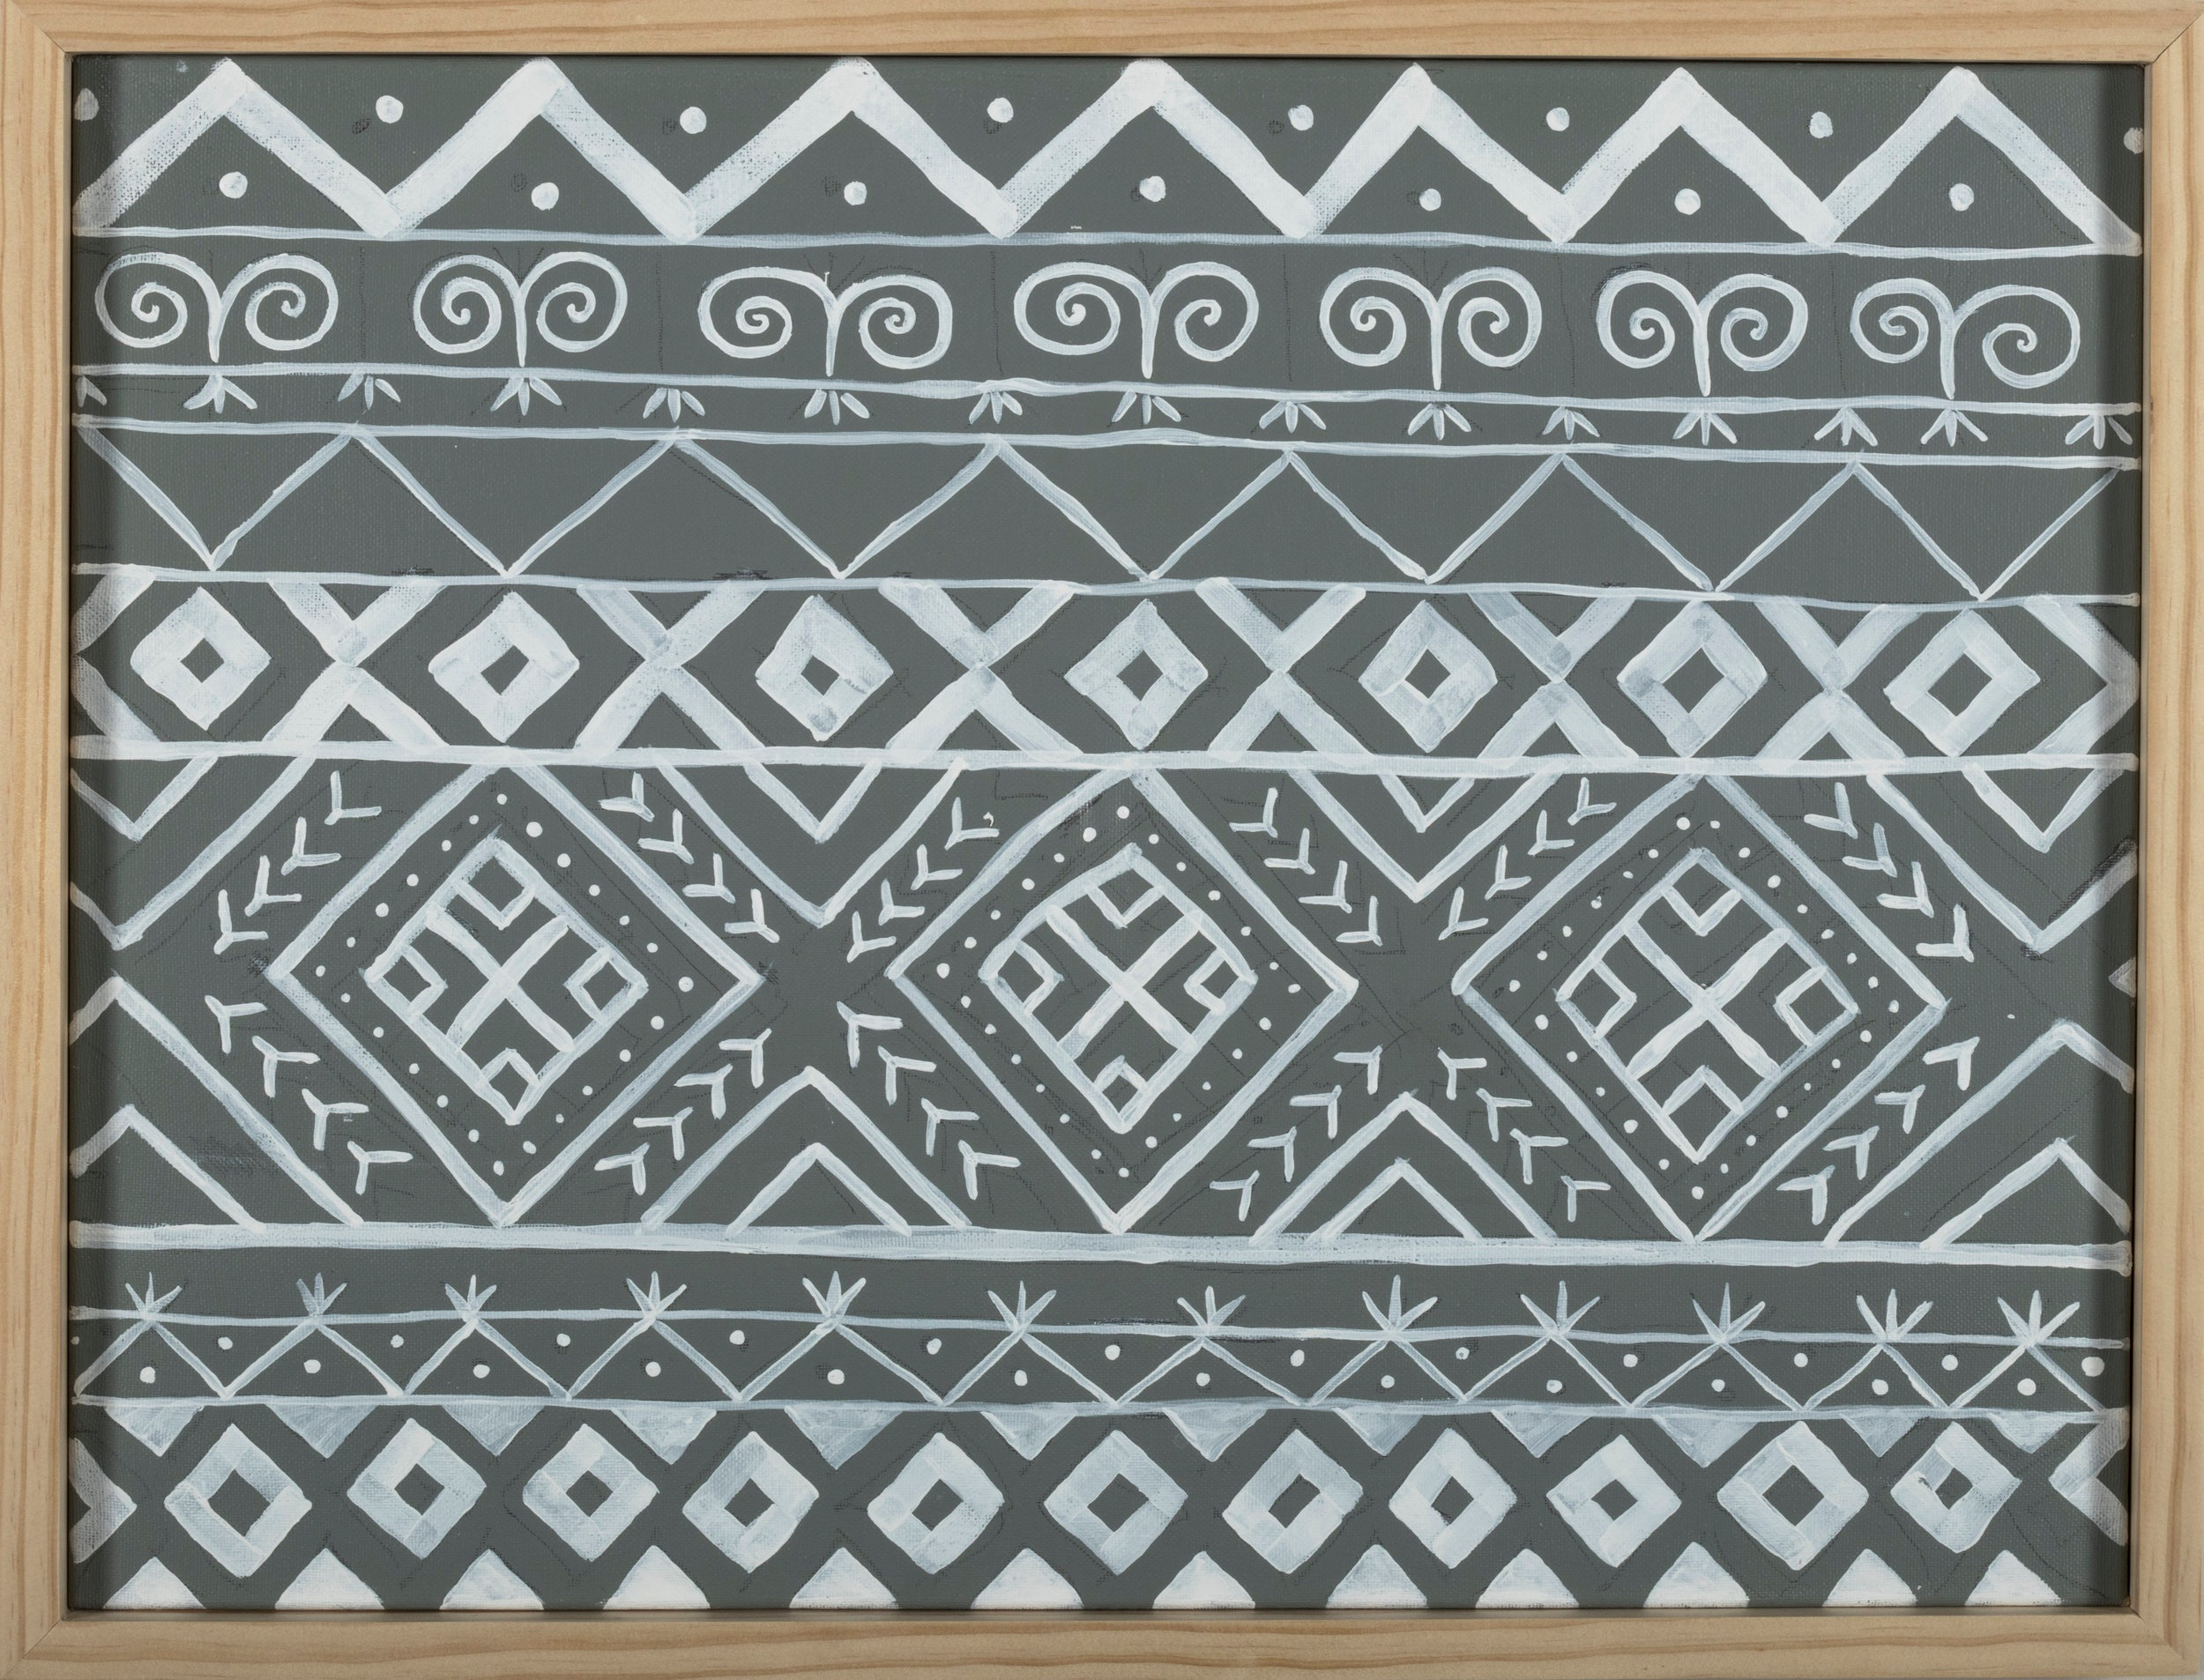 Above is a pattern from an exterior decorative painting style in Slovakia, reminiscent of Polish Pisanka egg designs.